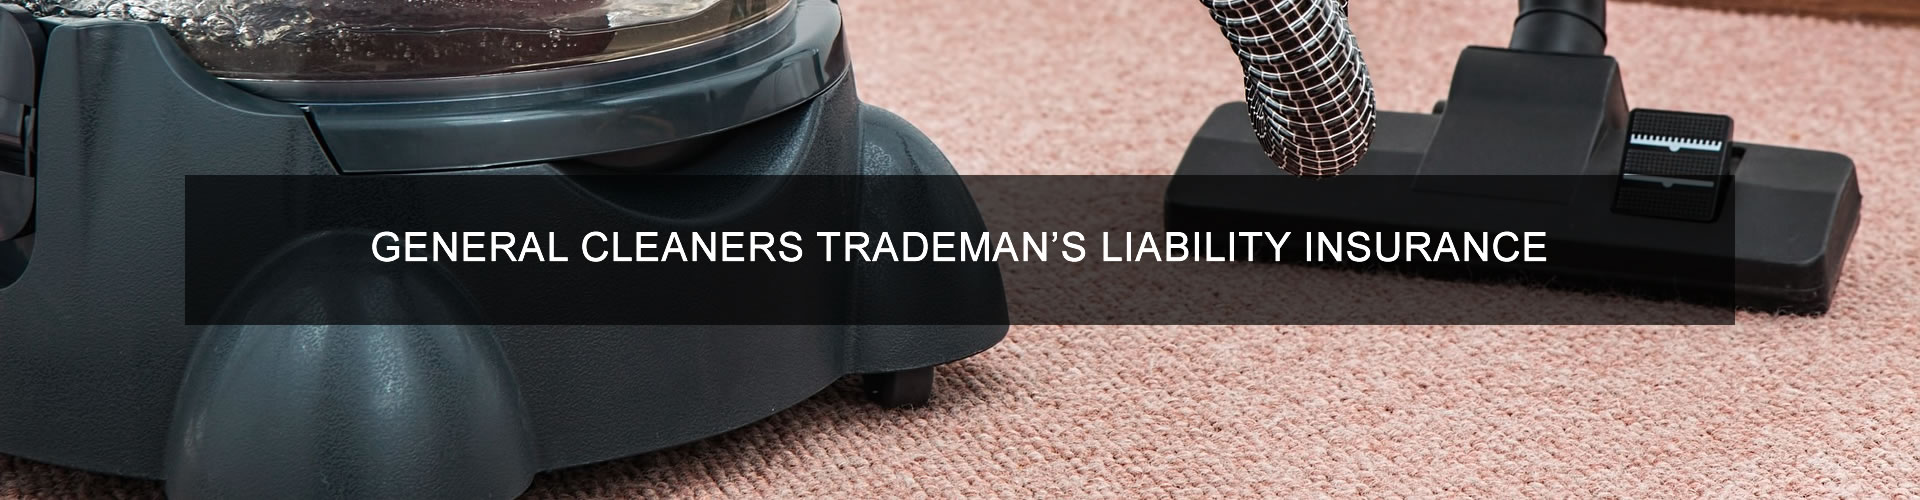 General Cleaners Tradesman's Liability Insurance